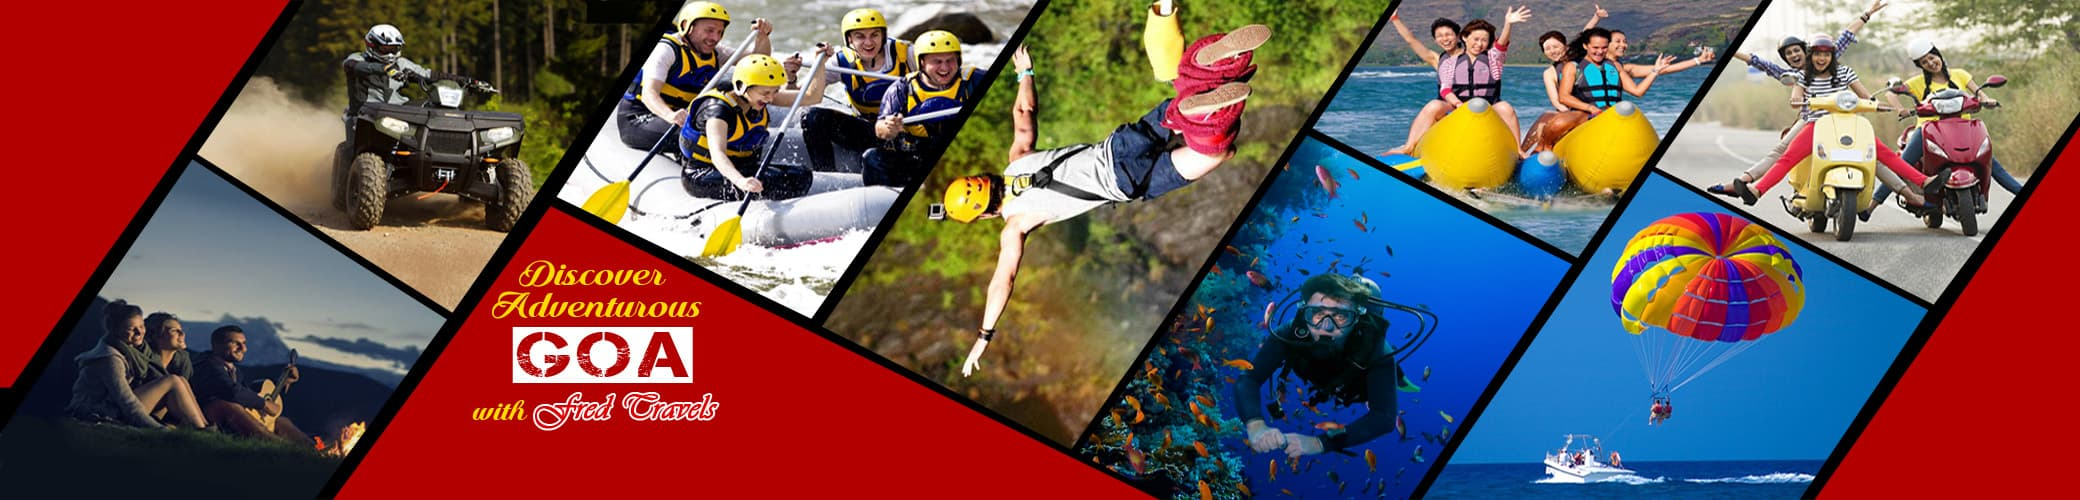 Adventure Activities to Experience in Goa